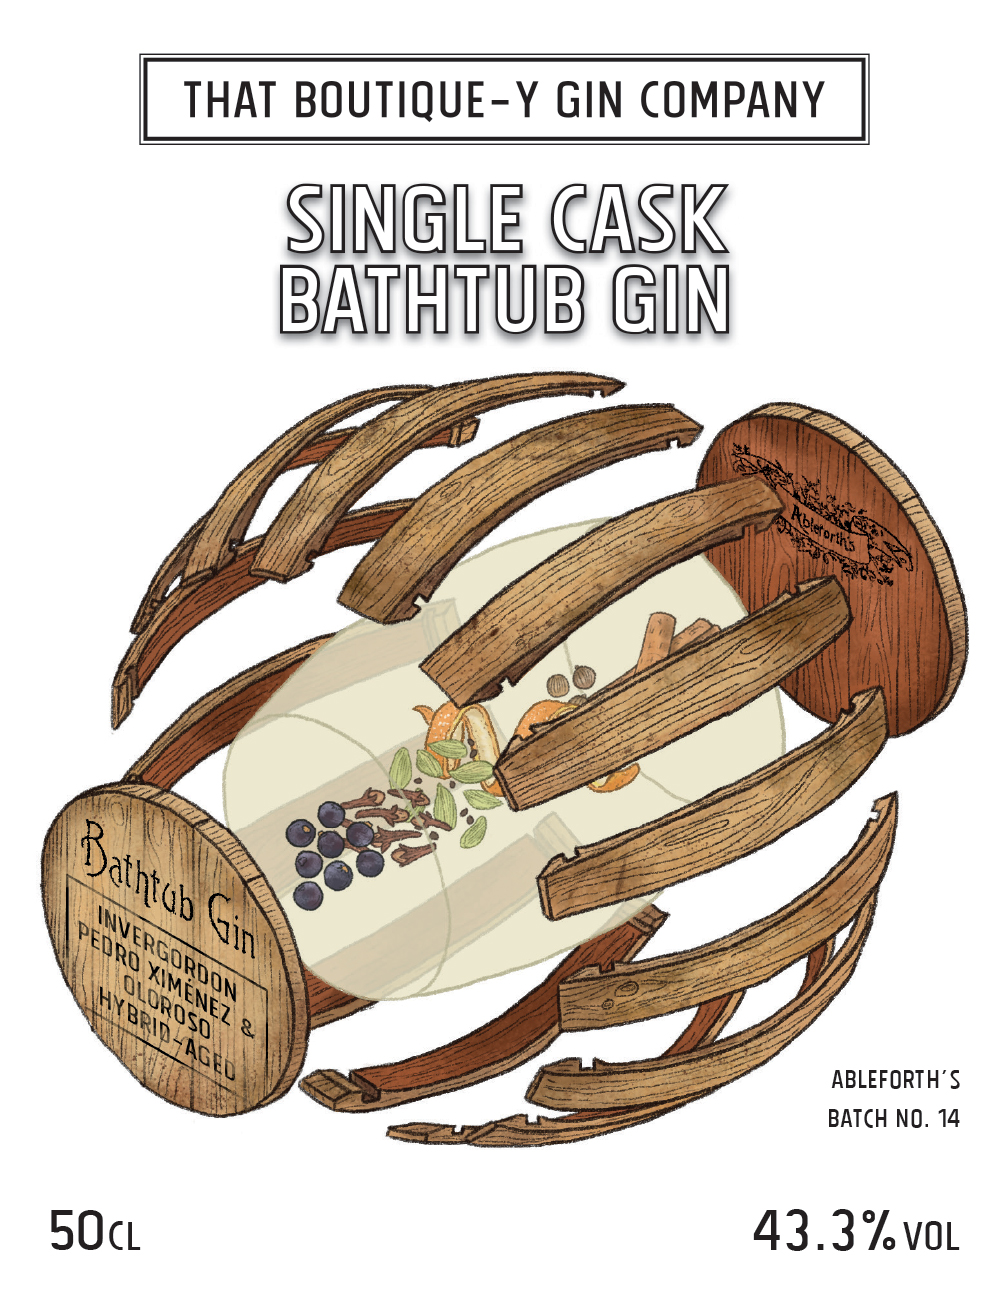 Single Cask Bathtub Gin — That Boutique-y Gin Company